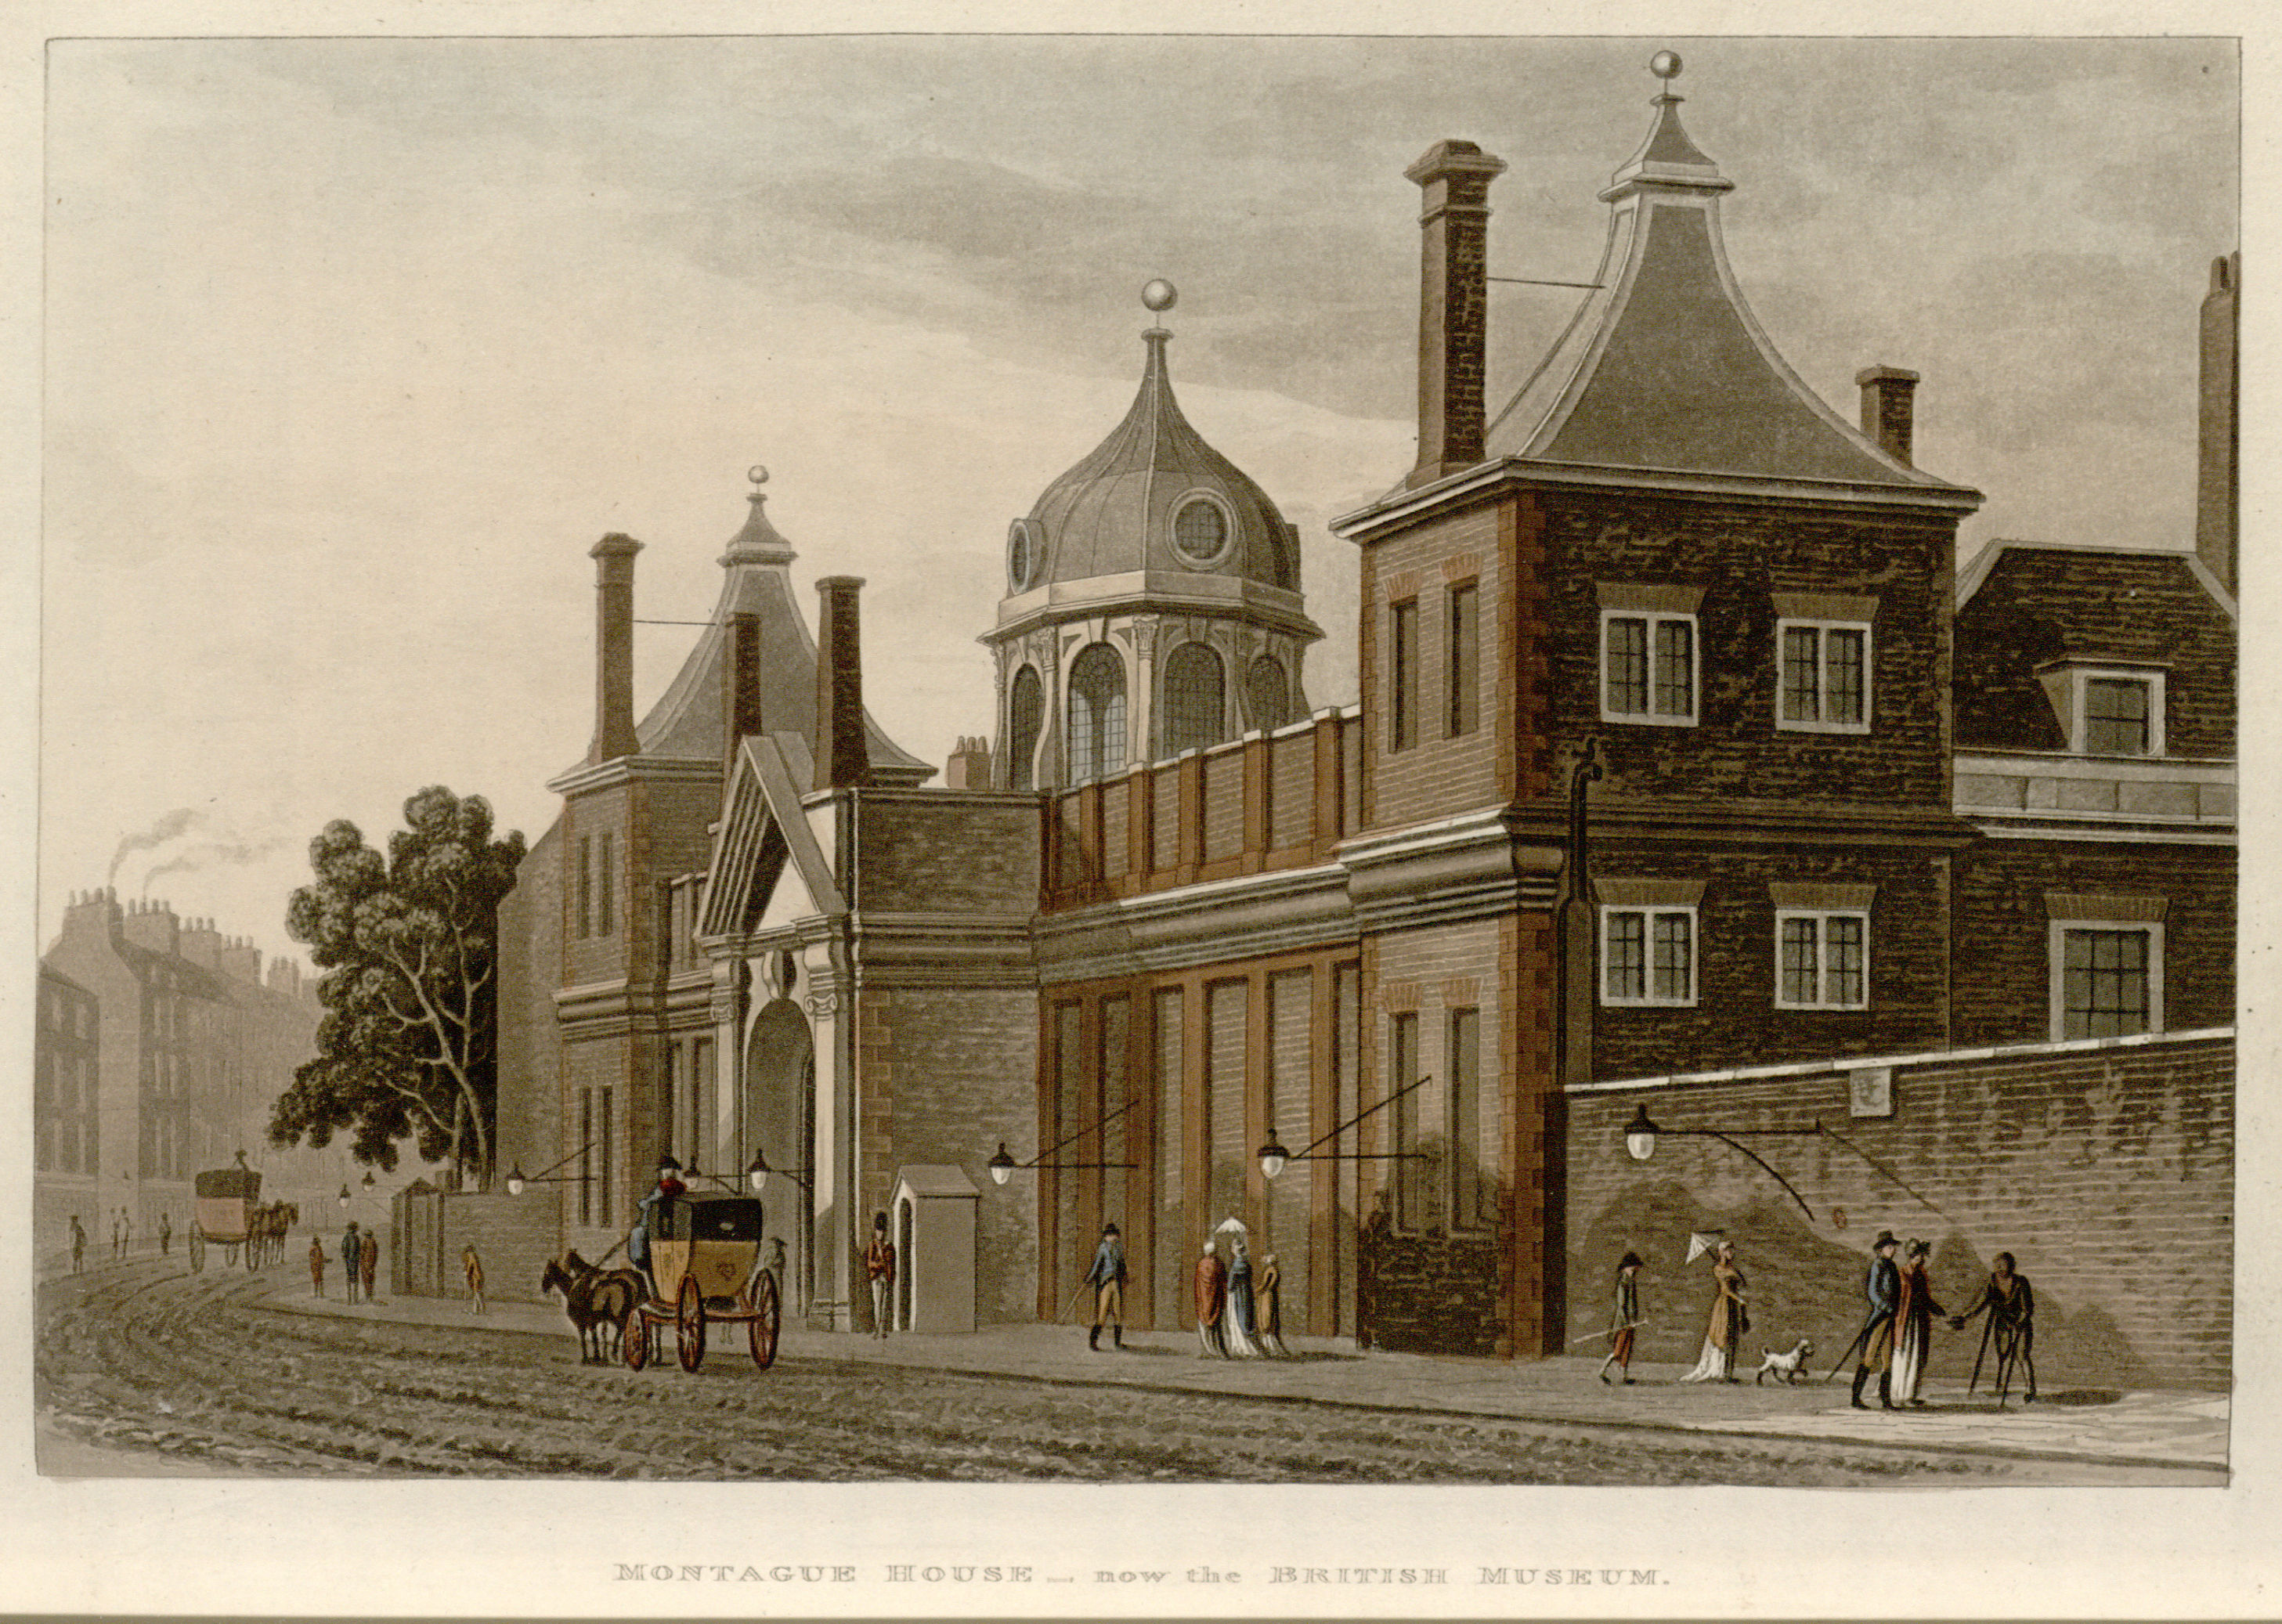 30 - Papworth - Montague House - now the British Museum